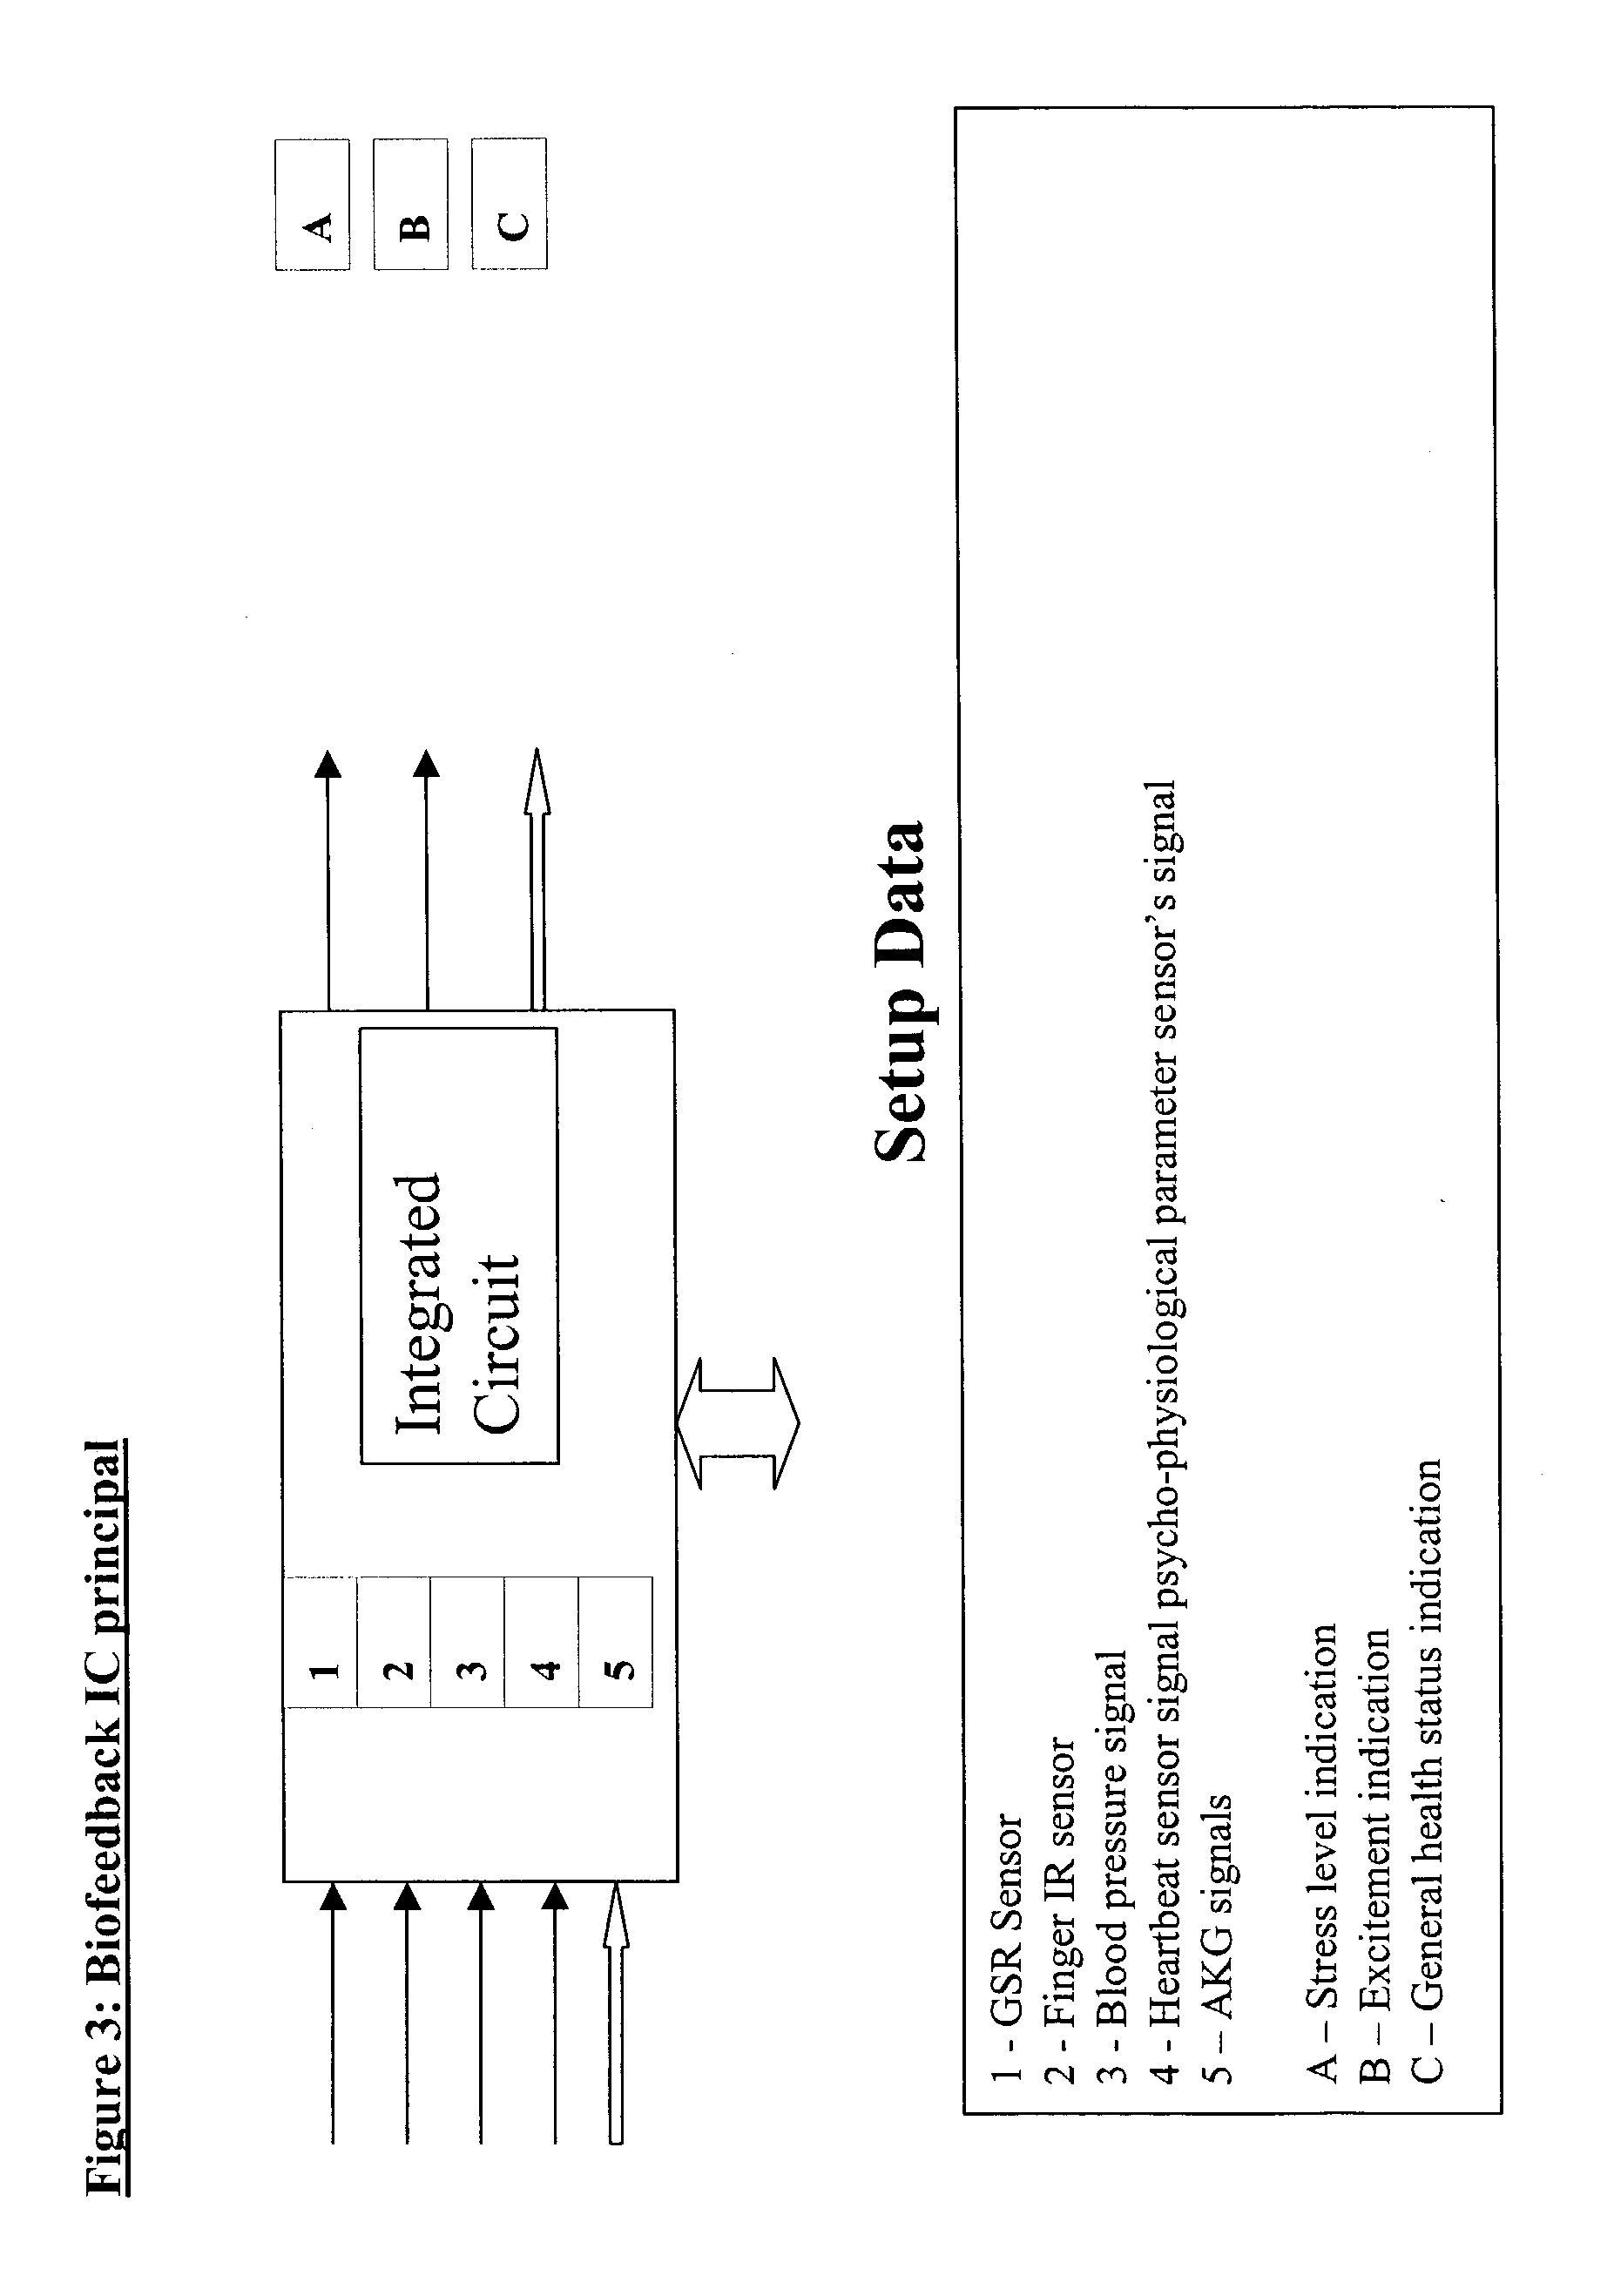 Patent Us20030149344 Applications Of The Biofeedback Technique And Heartbeat Sensor Circuit Drawing